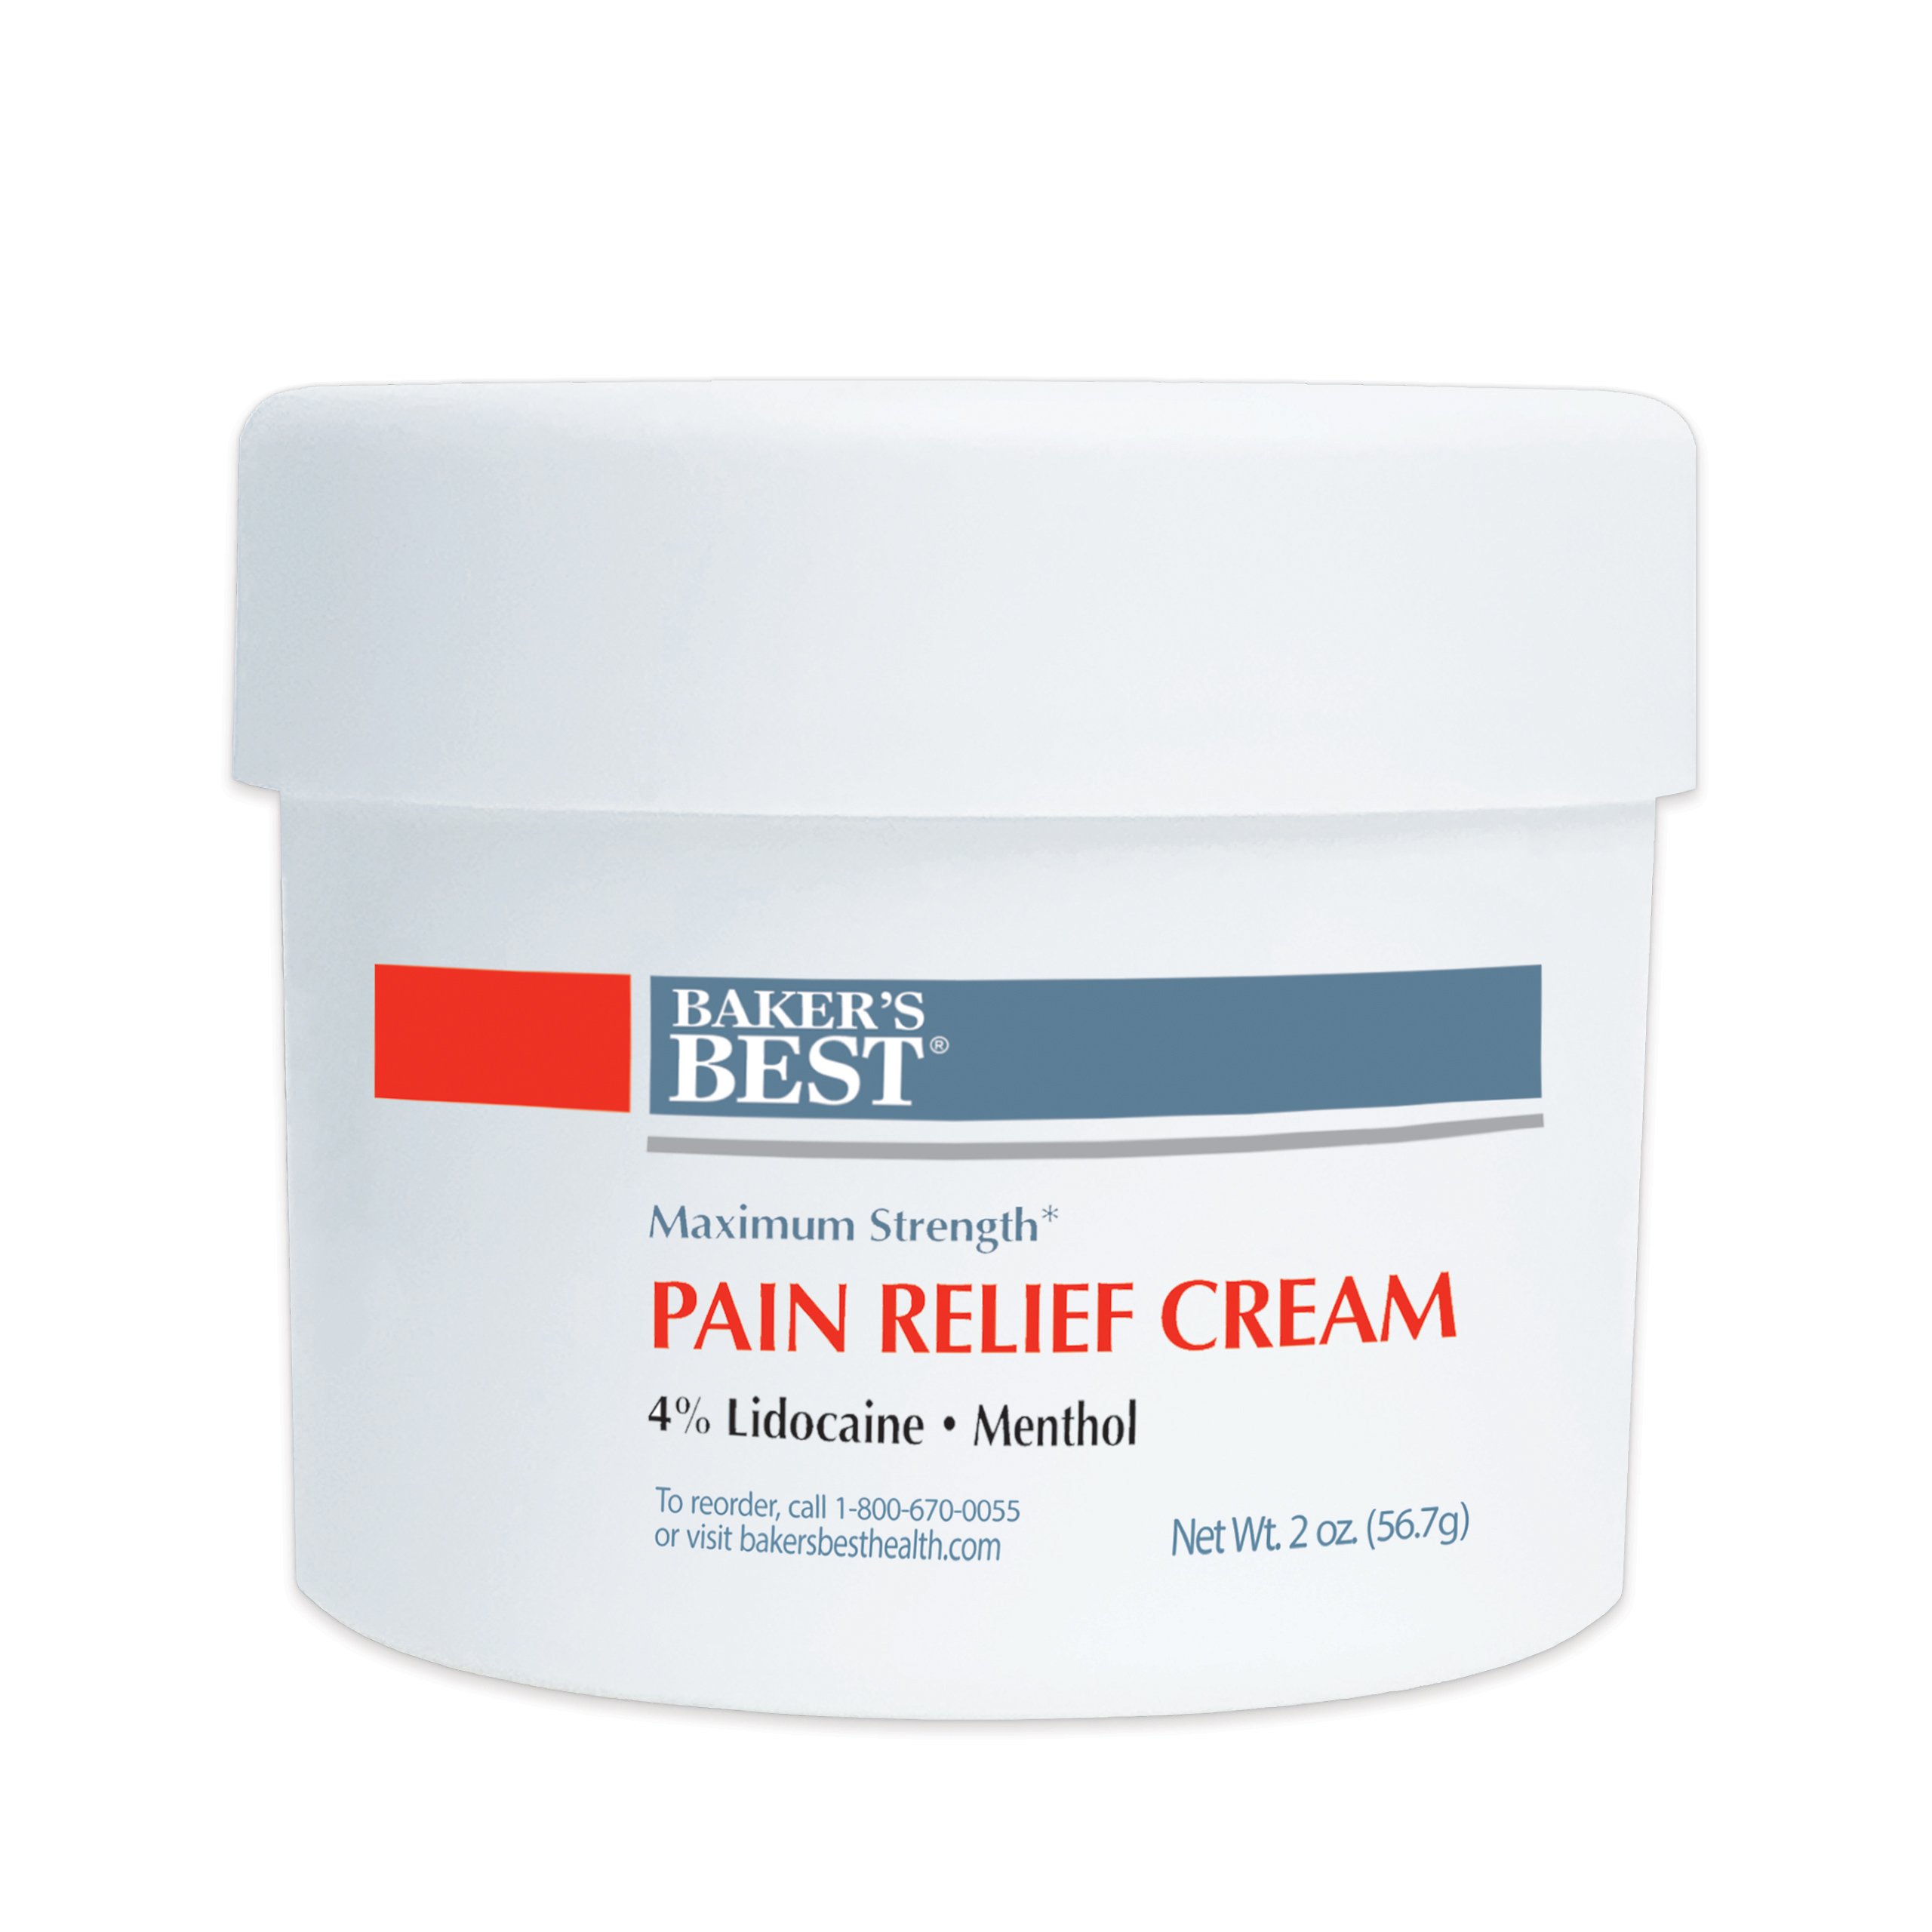 Maximum Strength Lidocaine Pain Relief Cream